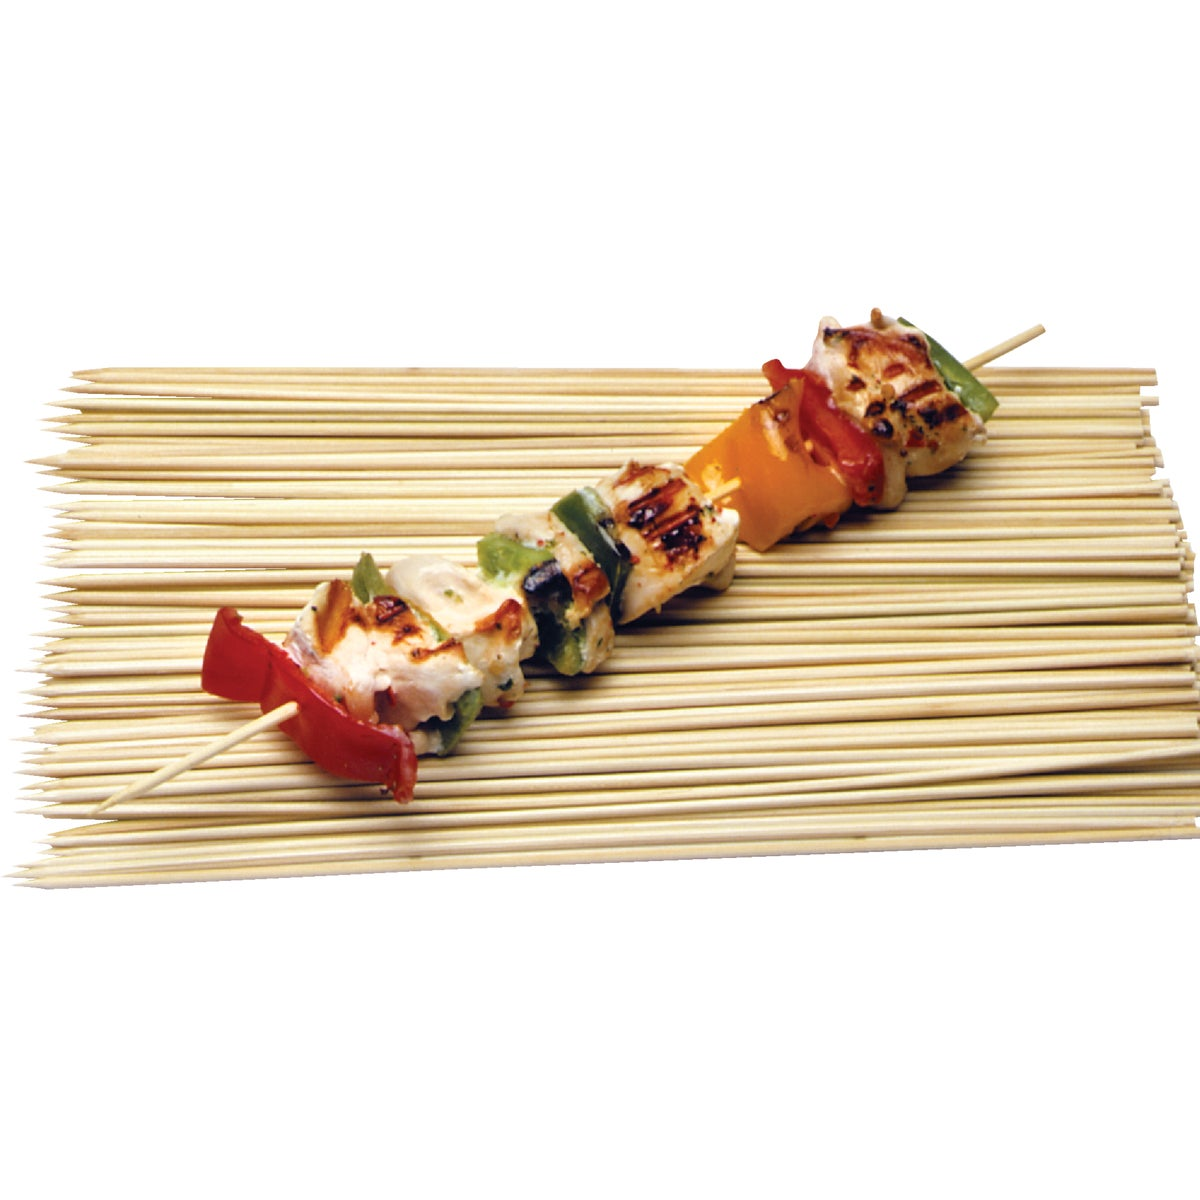 "12"" BAMBOO SKEWERS - 195 by Norpro"